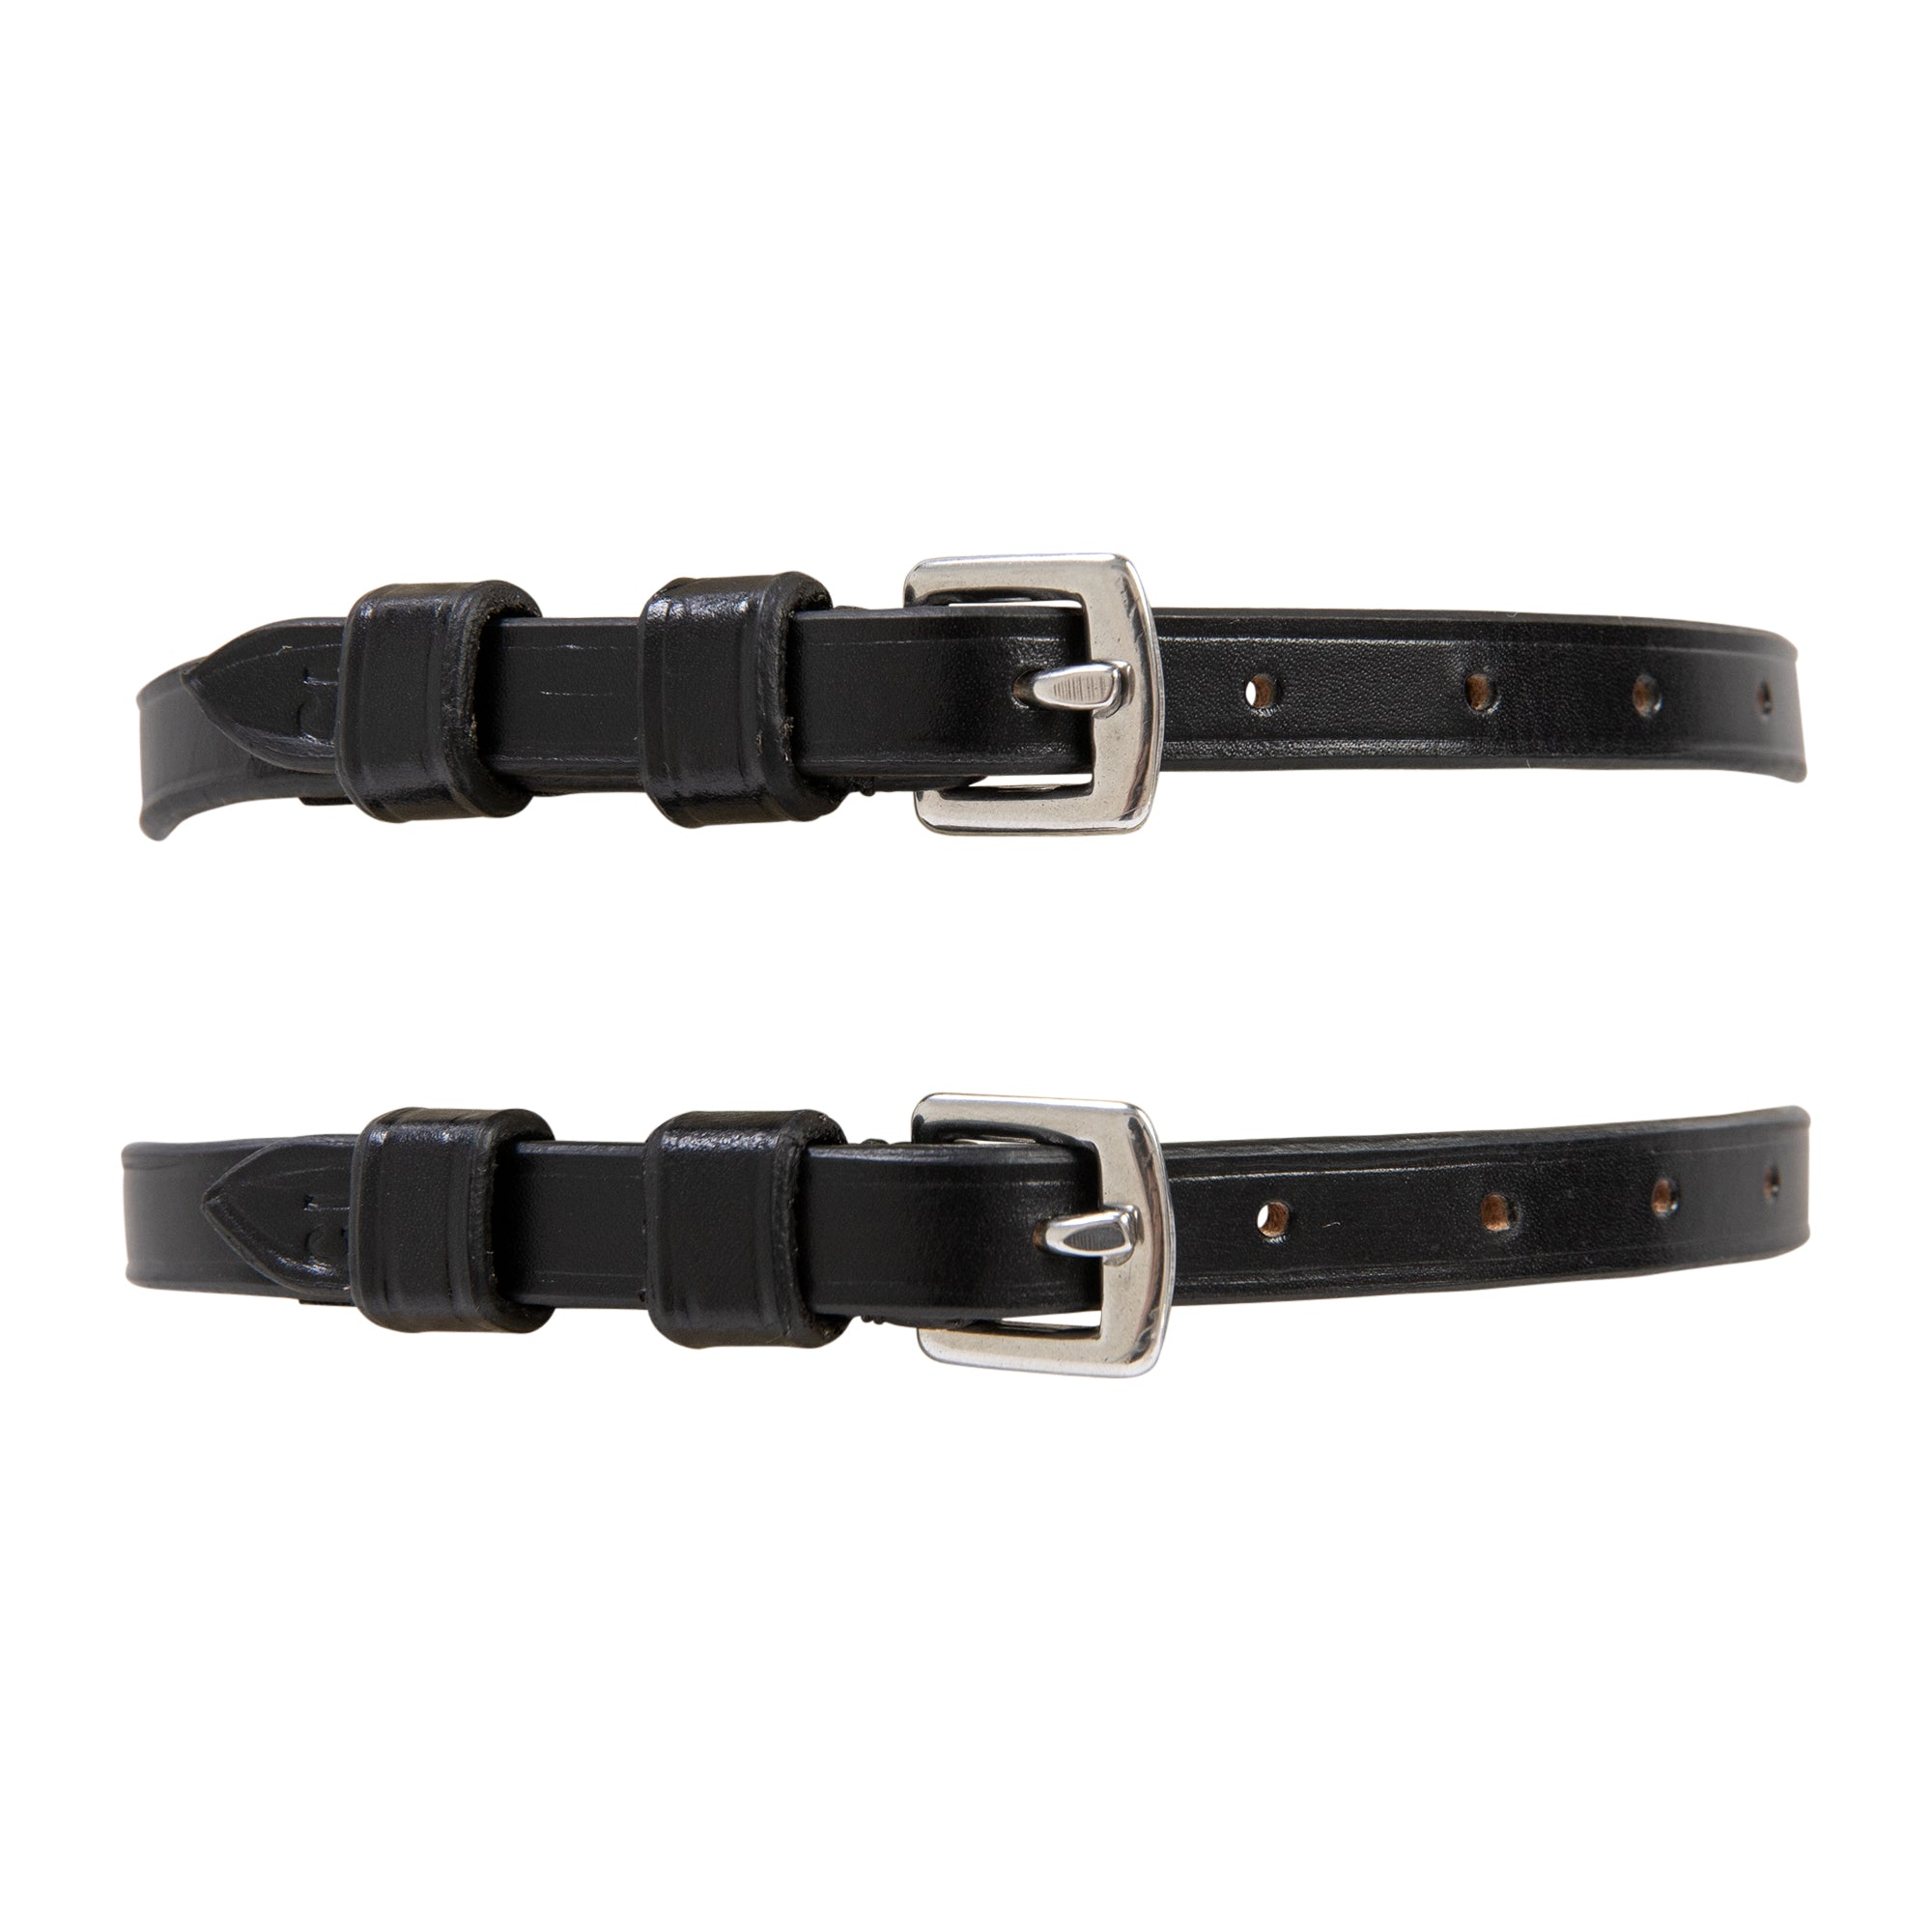 Huntley Equestrian Premium English Leather Spur Straps - Huntley Equestrian